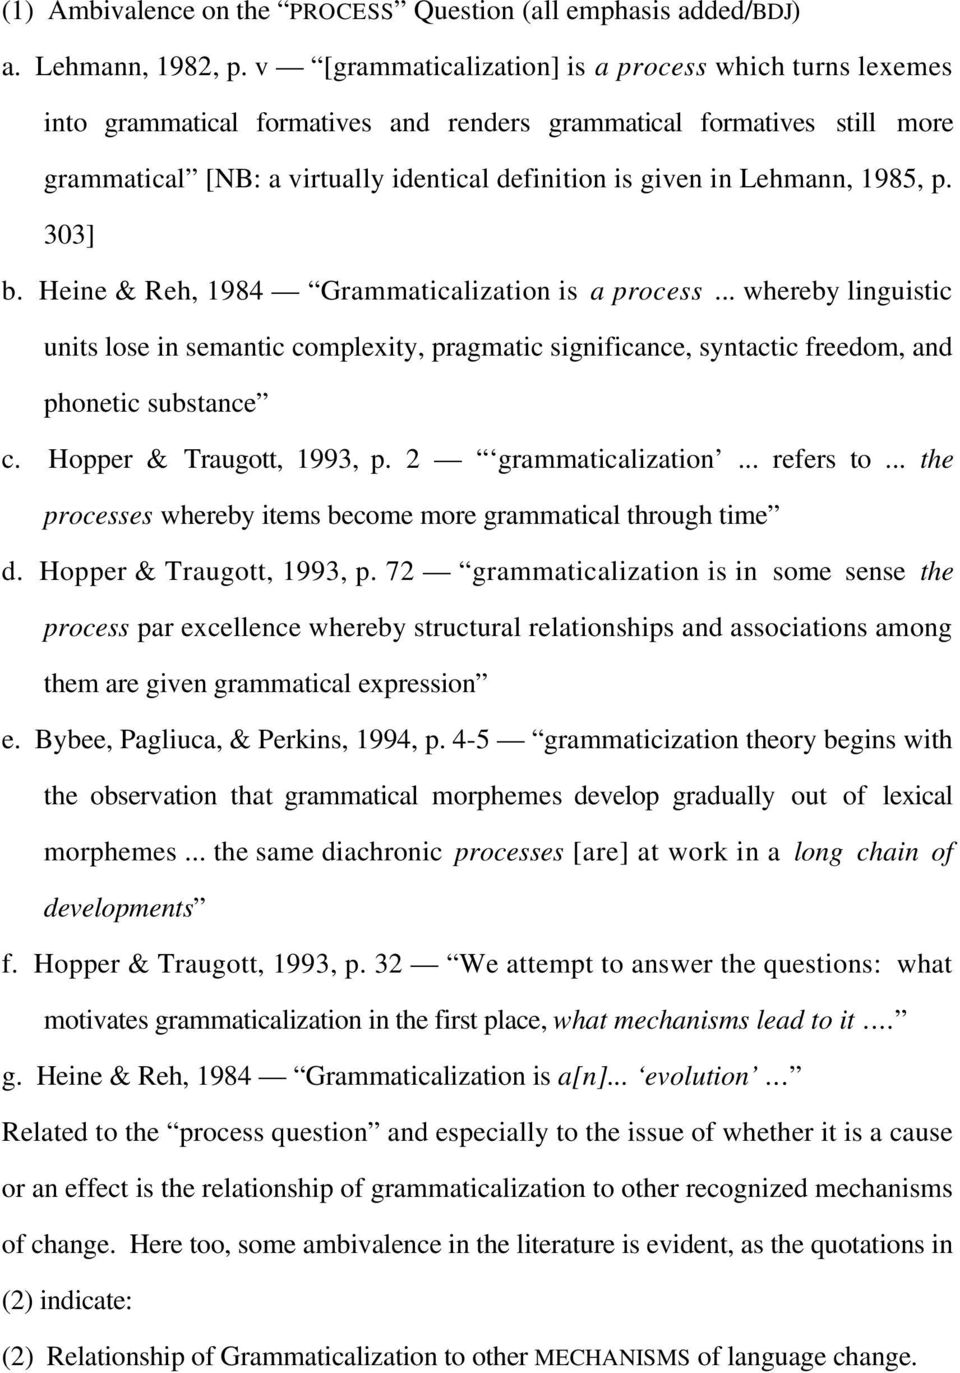 Lehmann, 1985, p. 303] b. Heine & Reh, 1984 Grammaticalization is a process... whereby linguistic units lose in semantic complexity, pragmatic significance, syntactic freedom, and phonetic substance c.